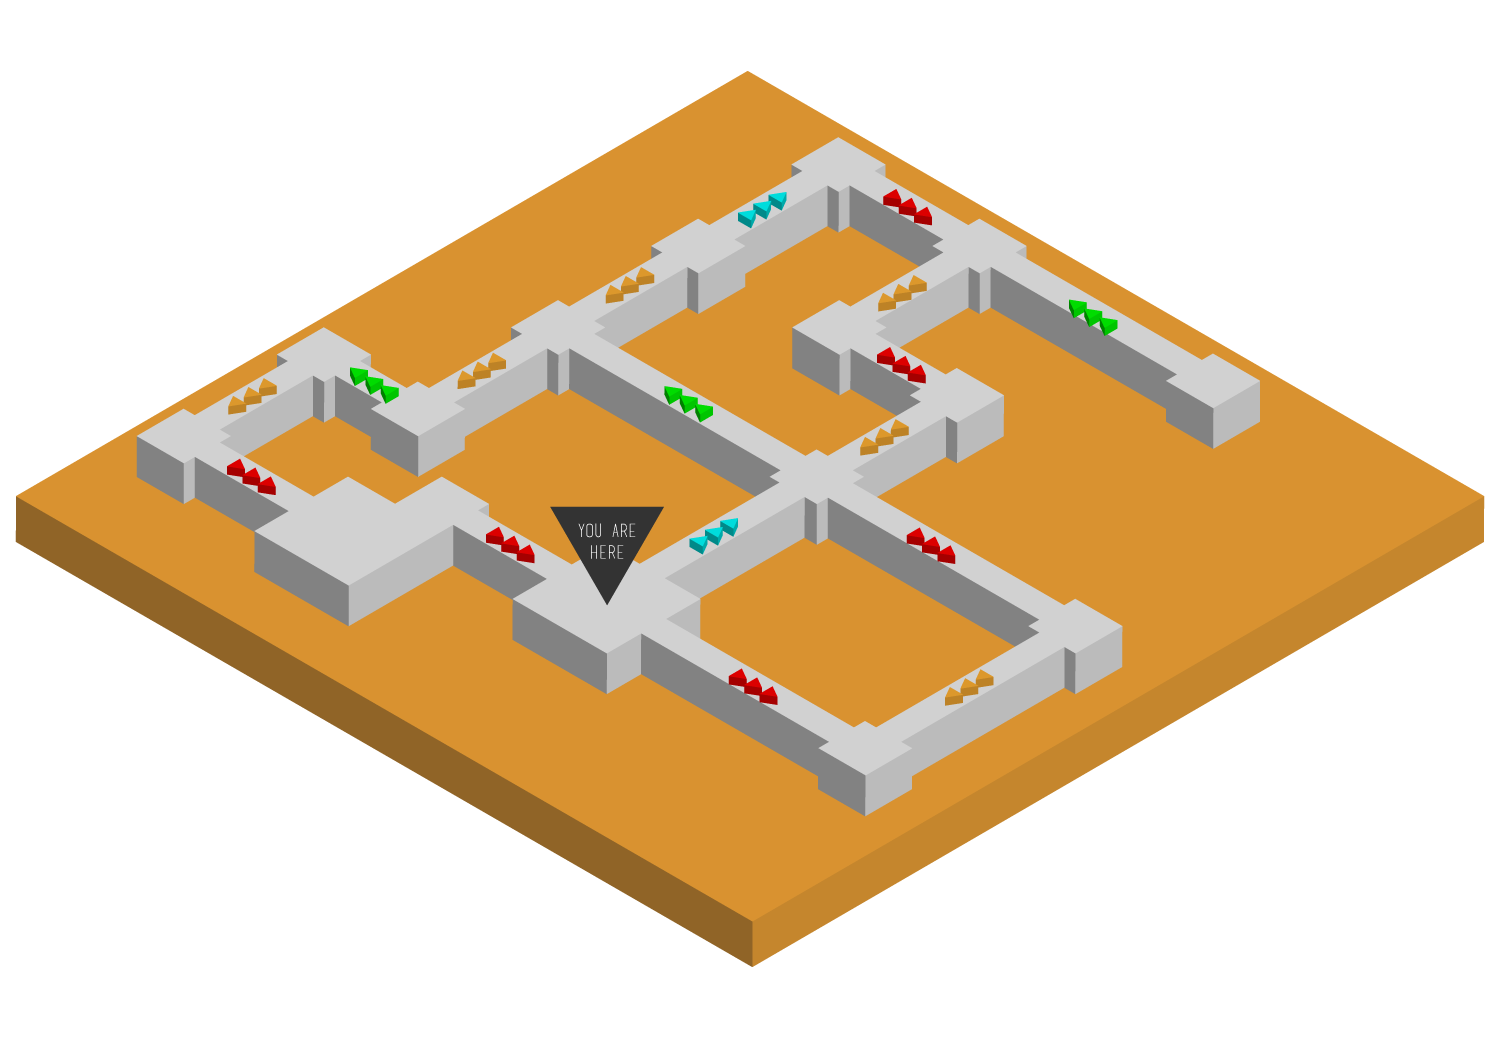 CONVEYOR BELT PUZZLE MAP